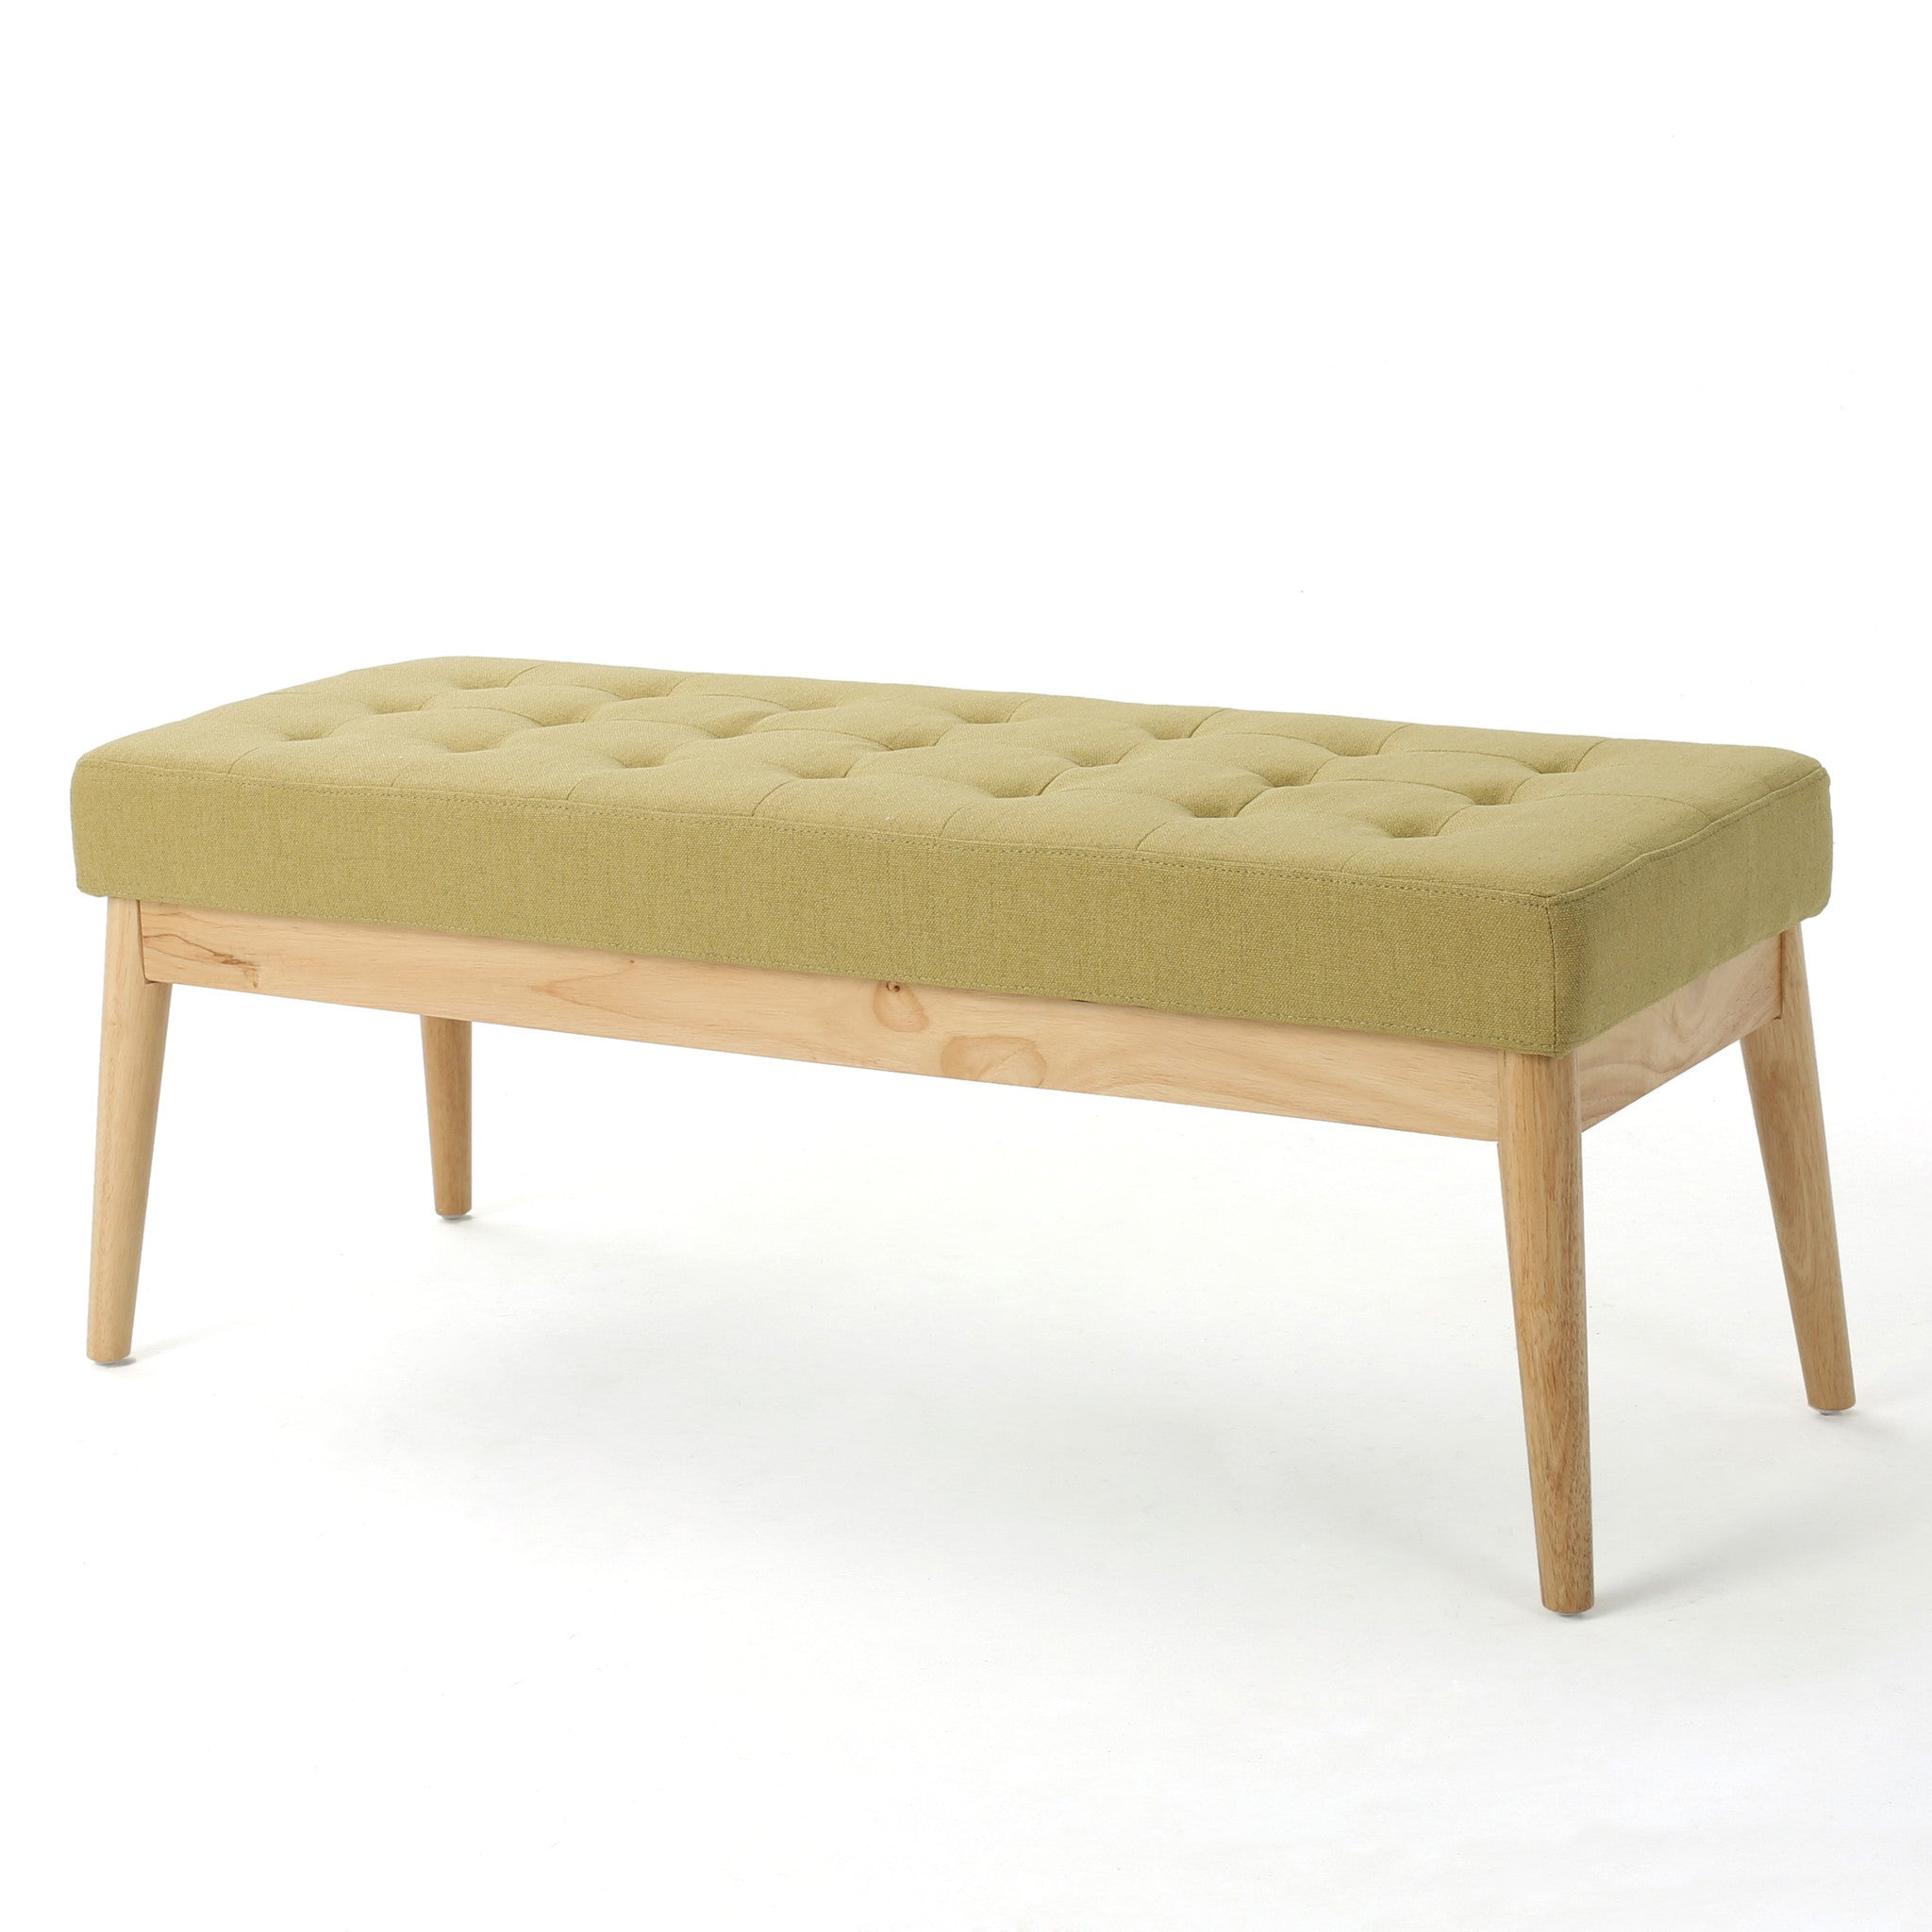 Anglo Modern Mid Century Fabric Bench Air Force Blue